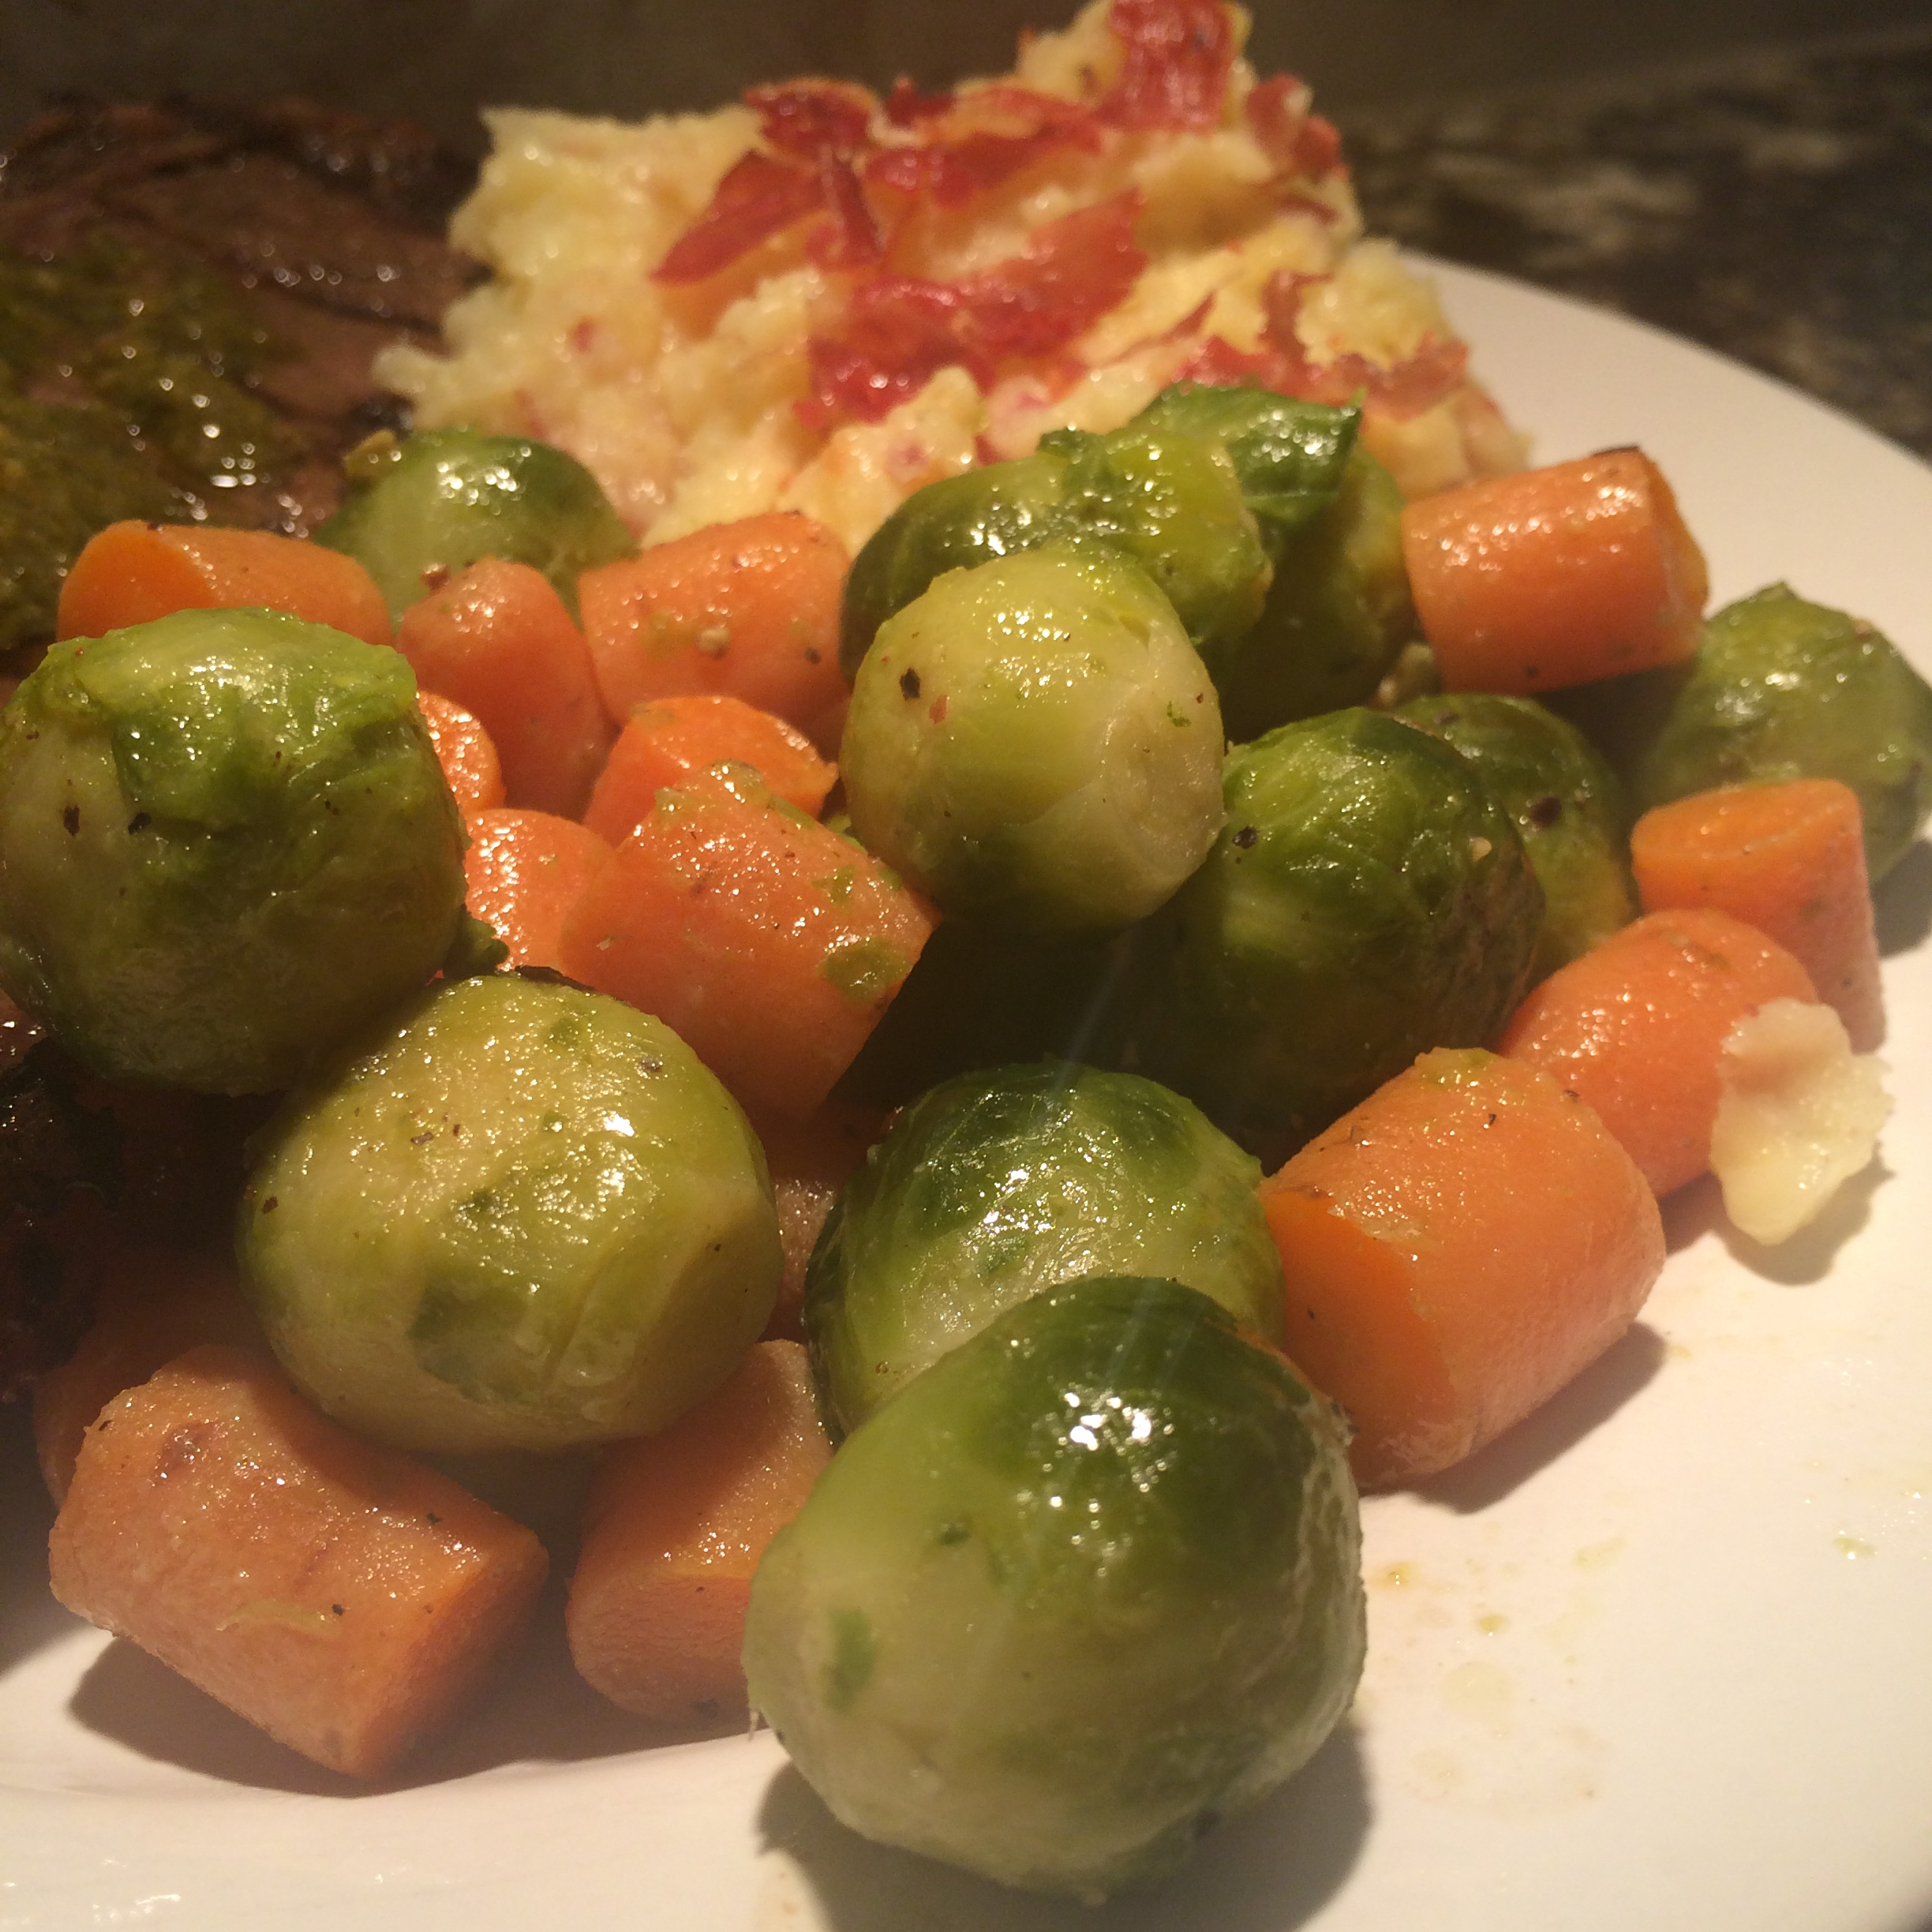 Brussel Sprouts and Carrots